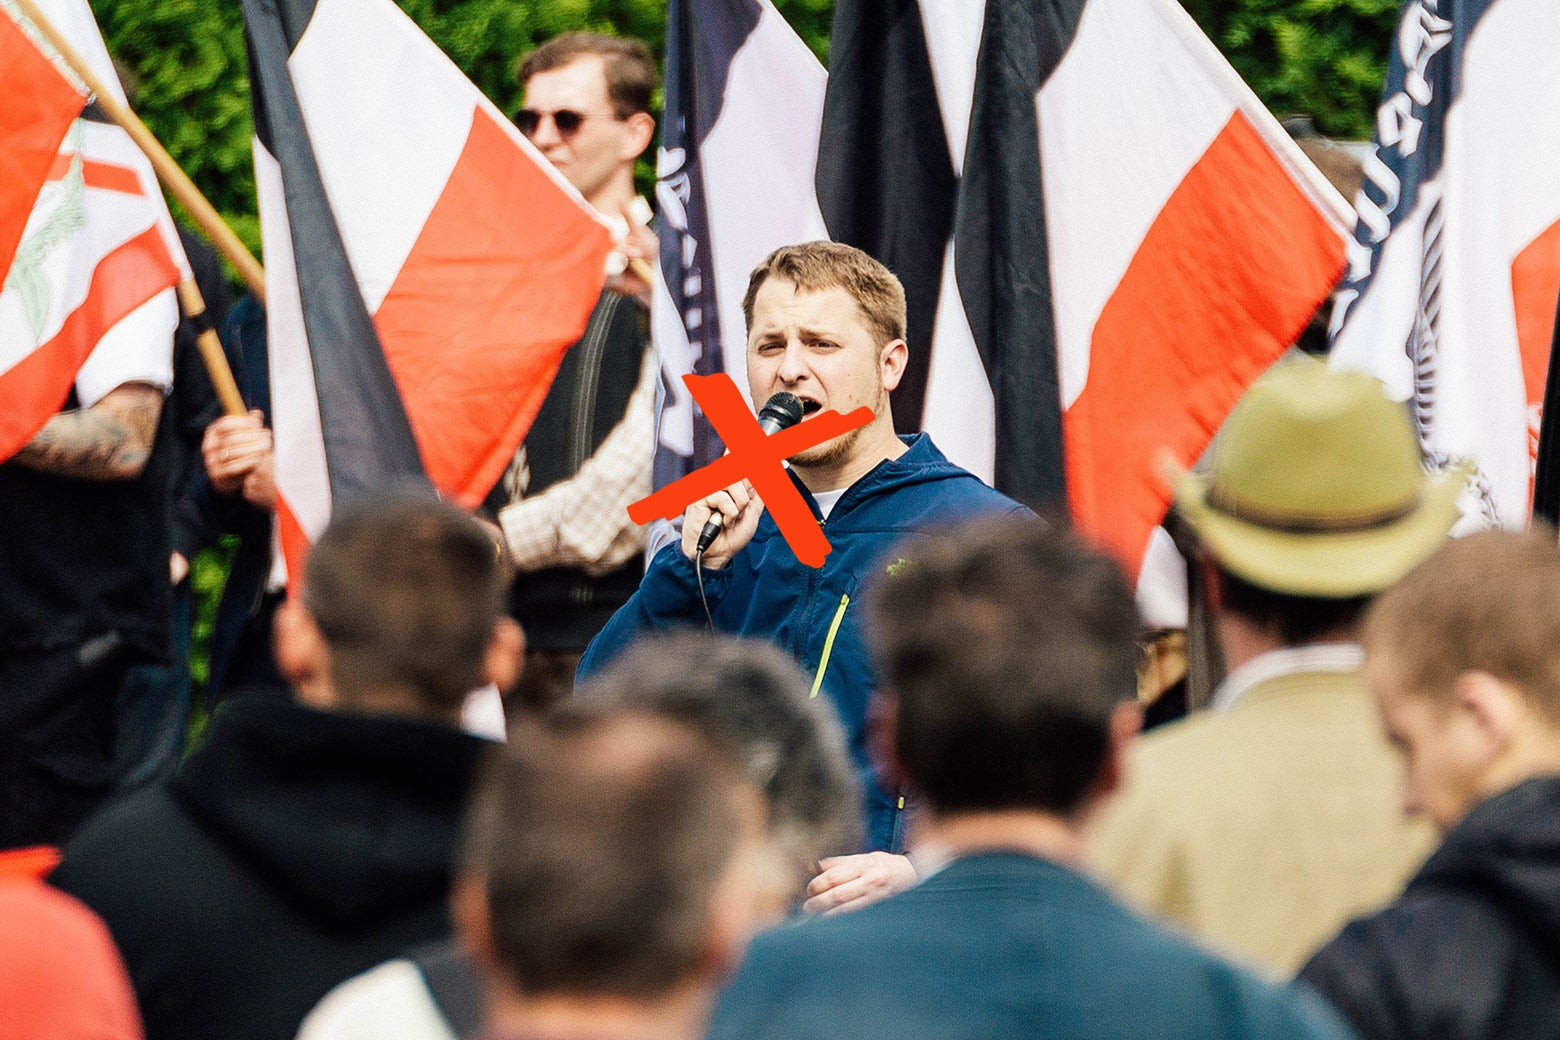 A neo-Nazi giving a speech at a rally, with an illustrated red X over his face.